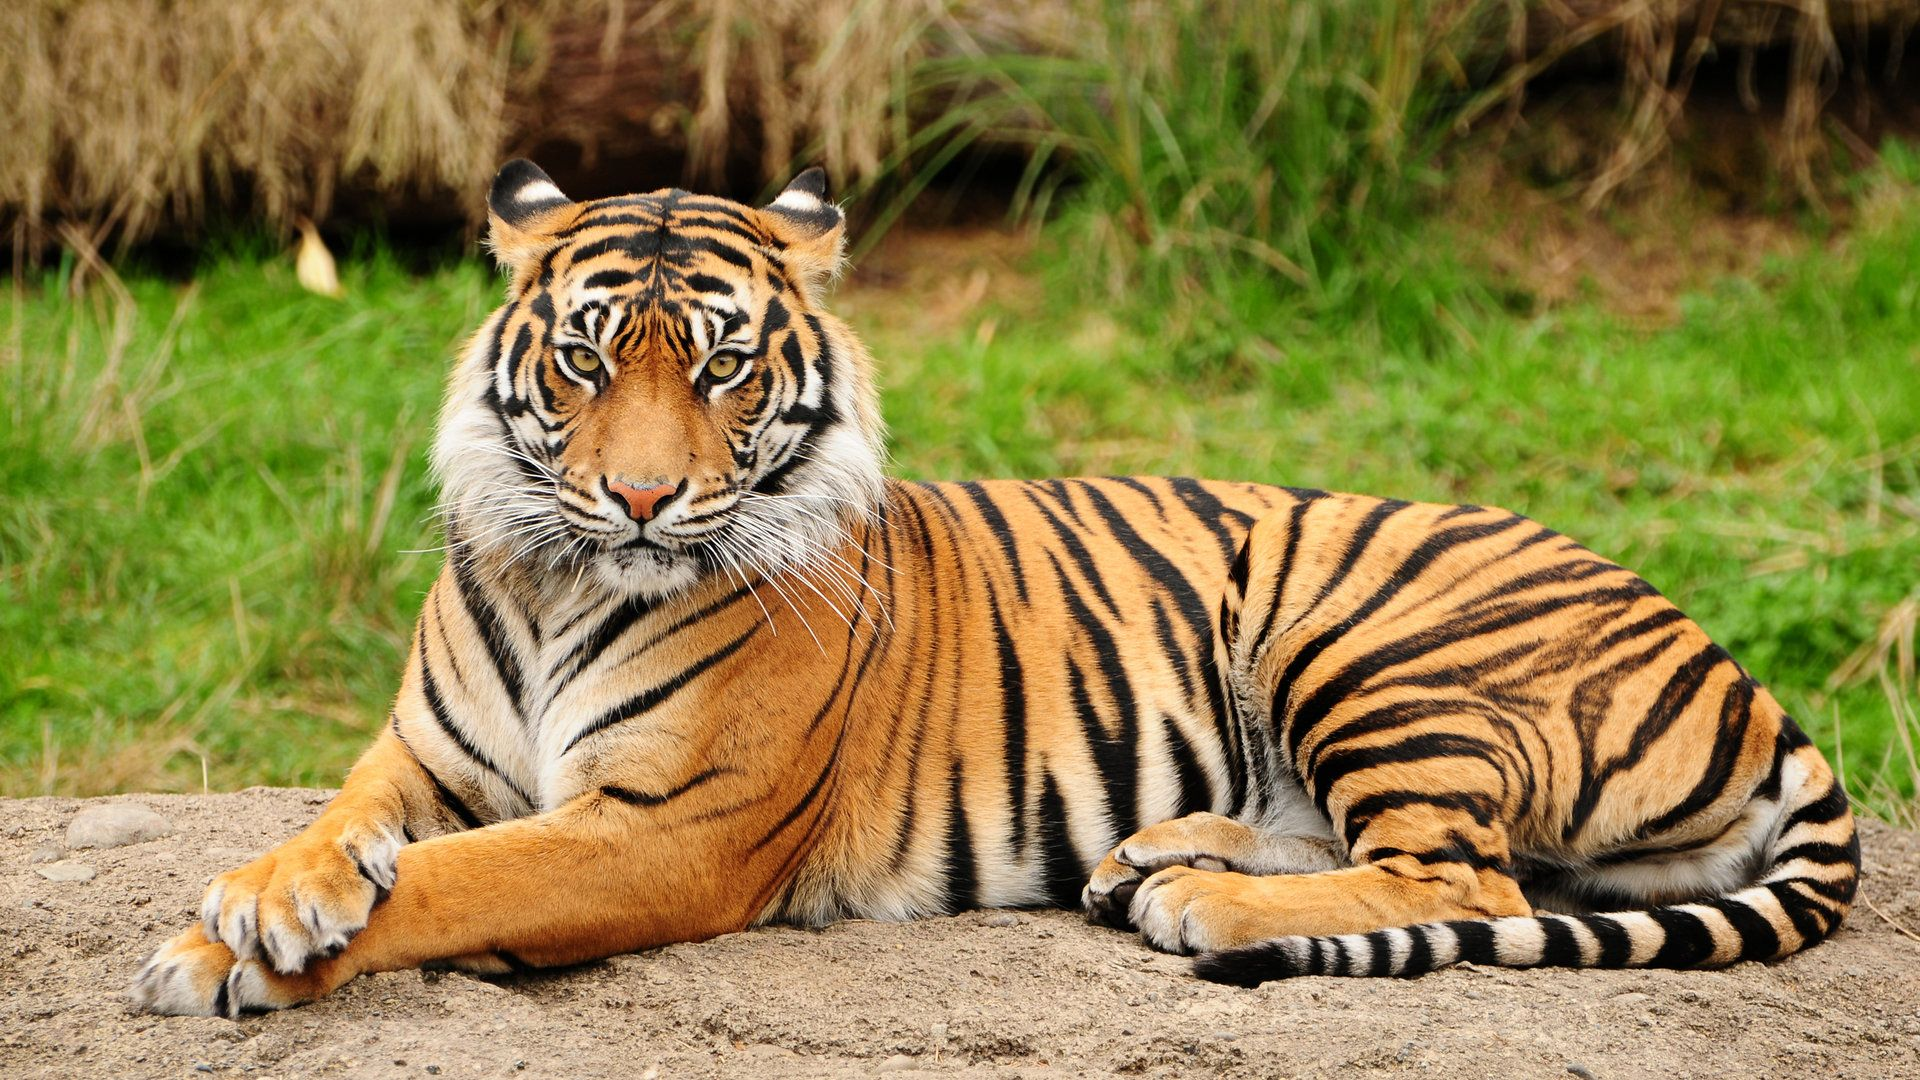 download free bengal tiger wallpaper | pixelstalk